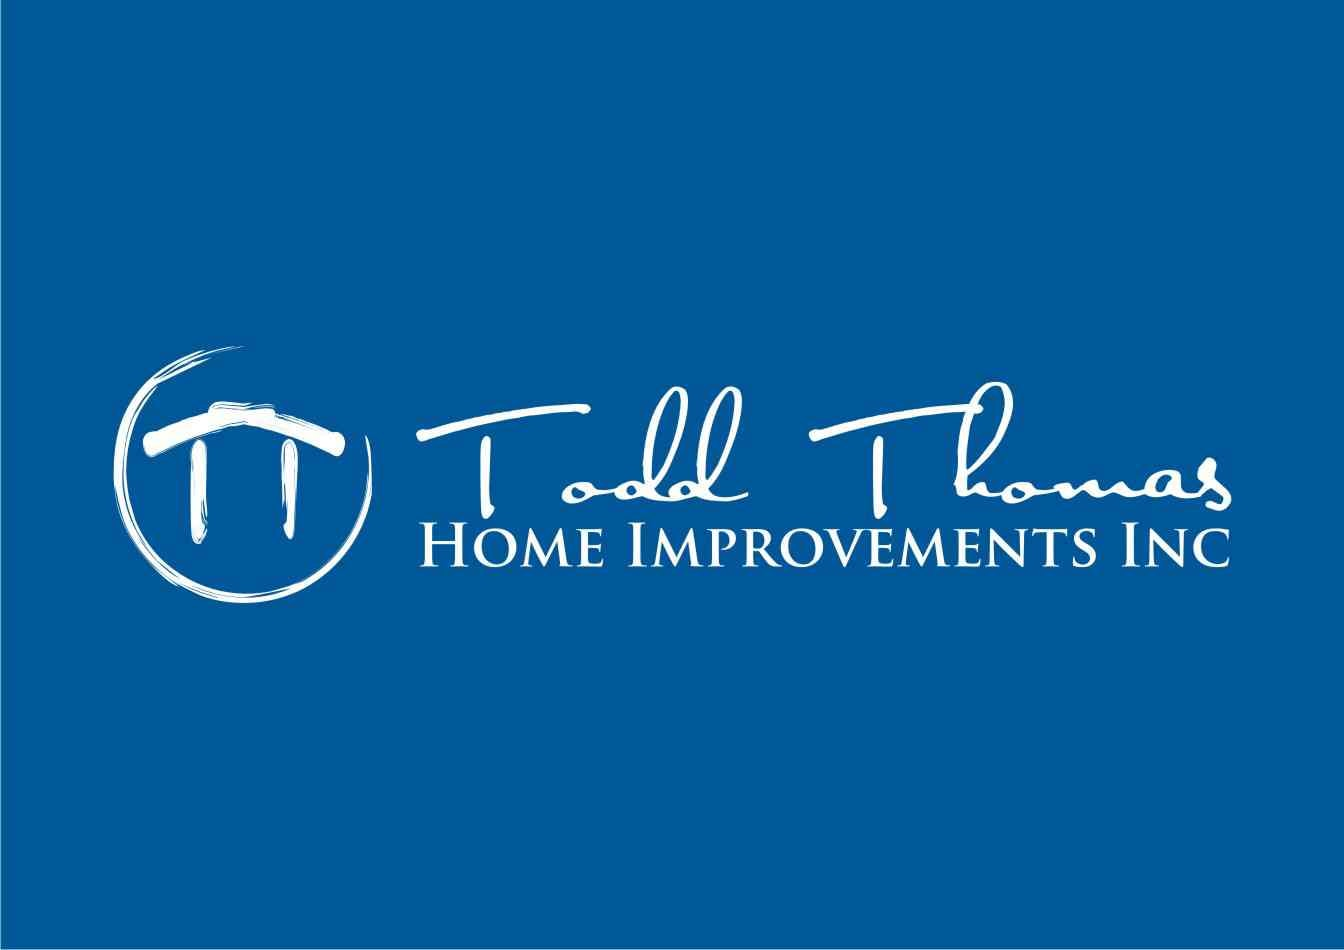 Todd Thomas Home Improvements Inc logo